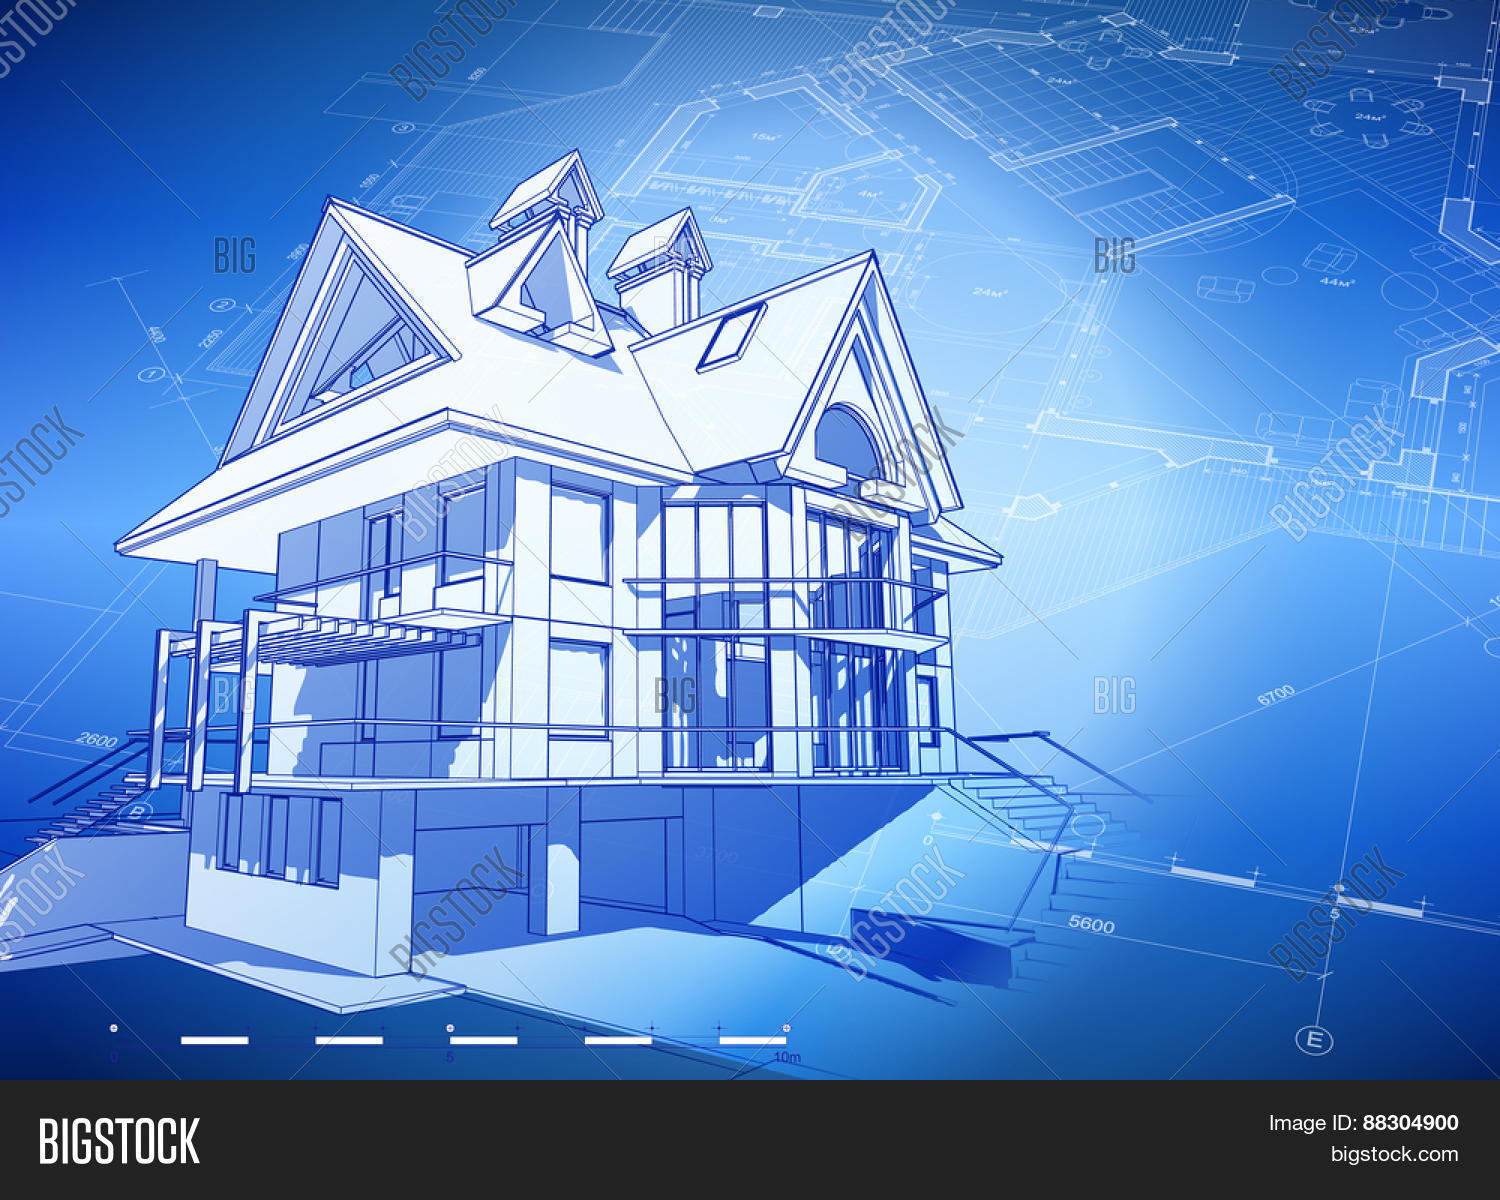 Architecture design vector photo free trial bigstock architecture design blueprint 3d house plan blue technology background vector illustration malvernweather Images